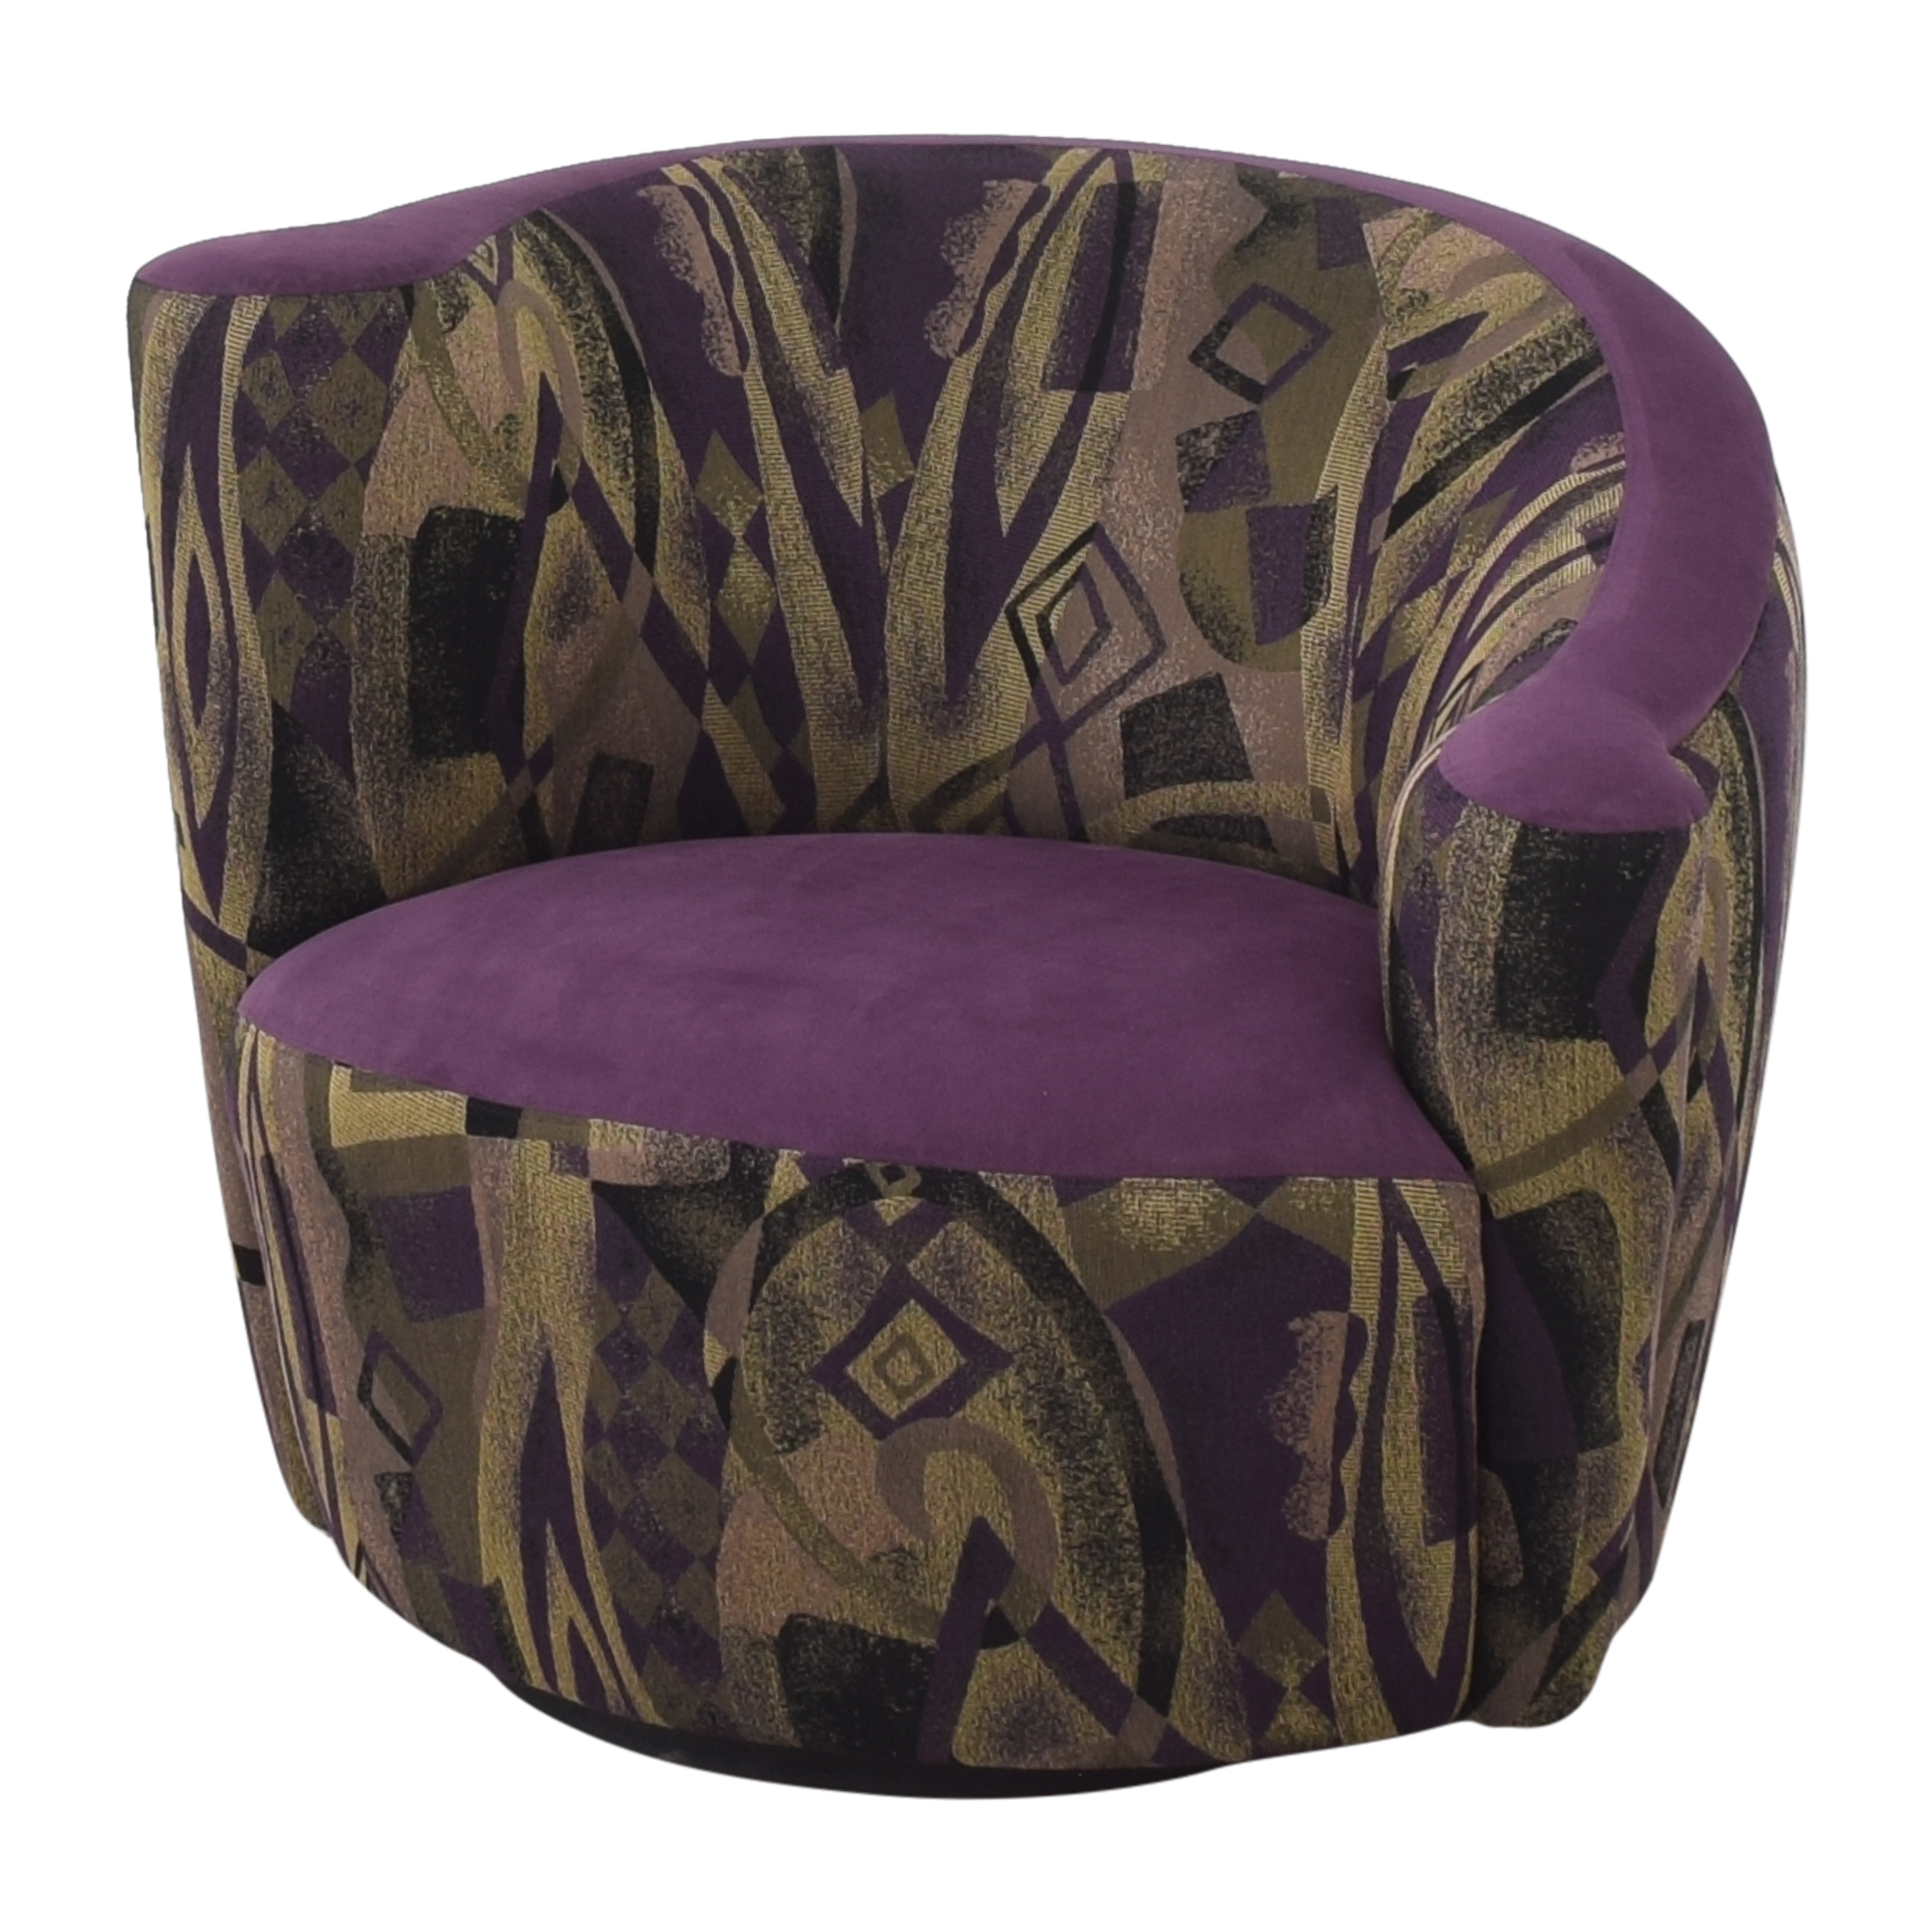 Weiman Weiman Nautilus Lounge Chair and Ottoman discount